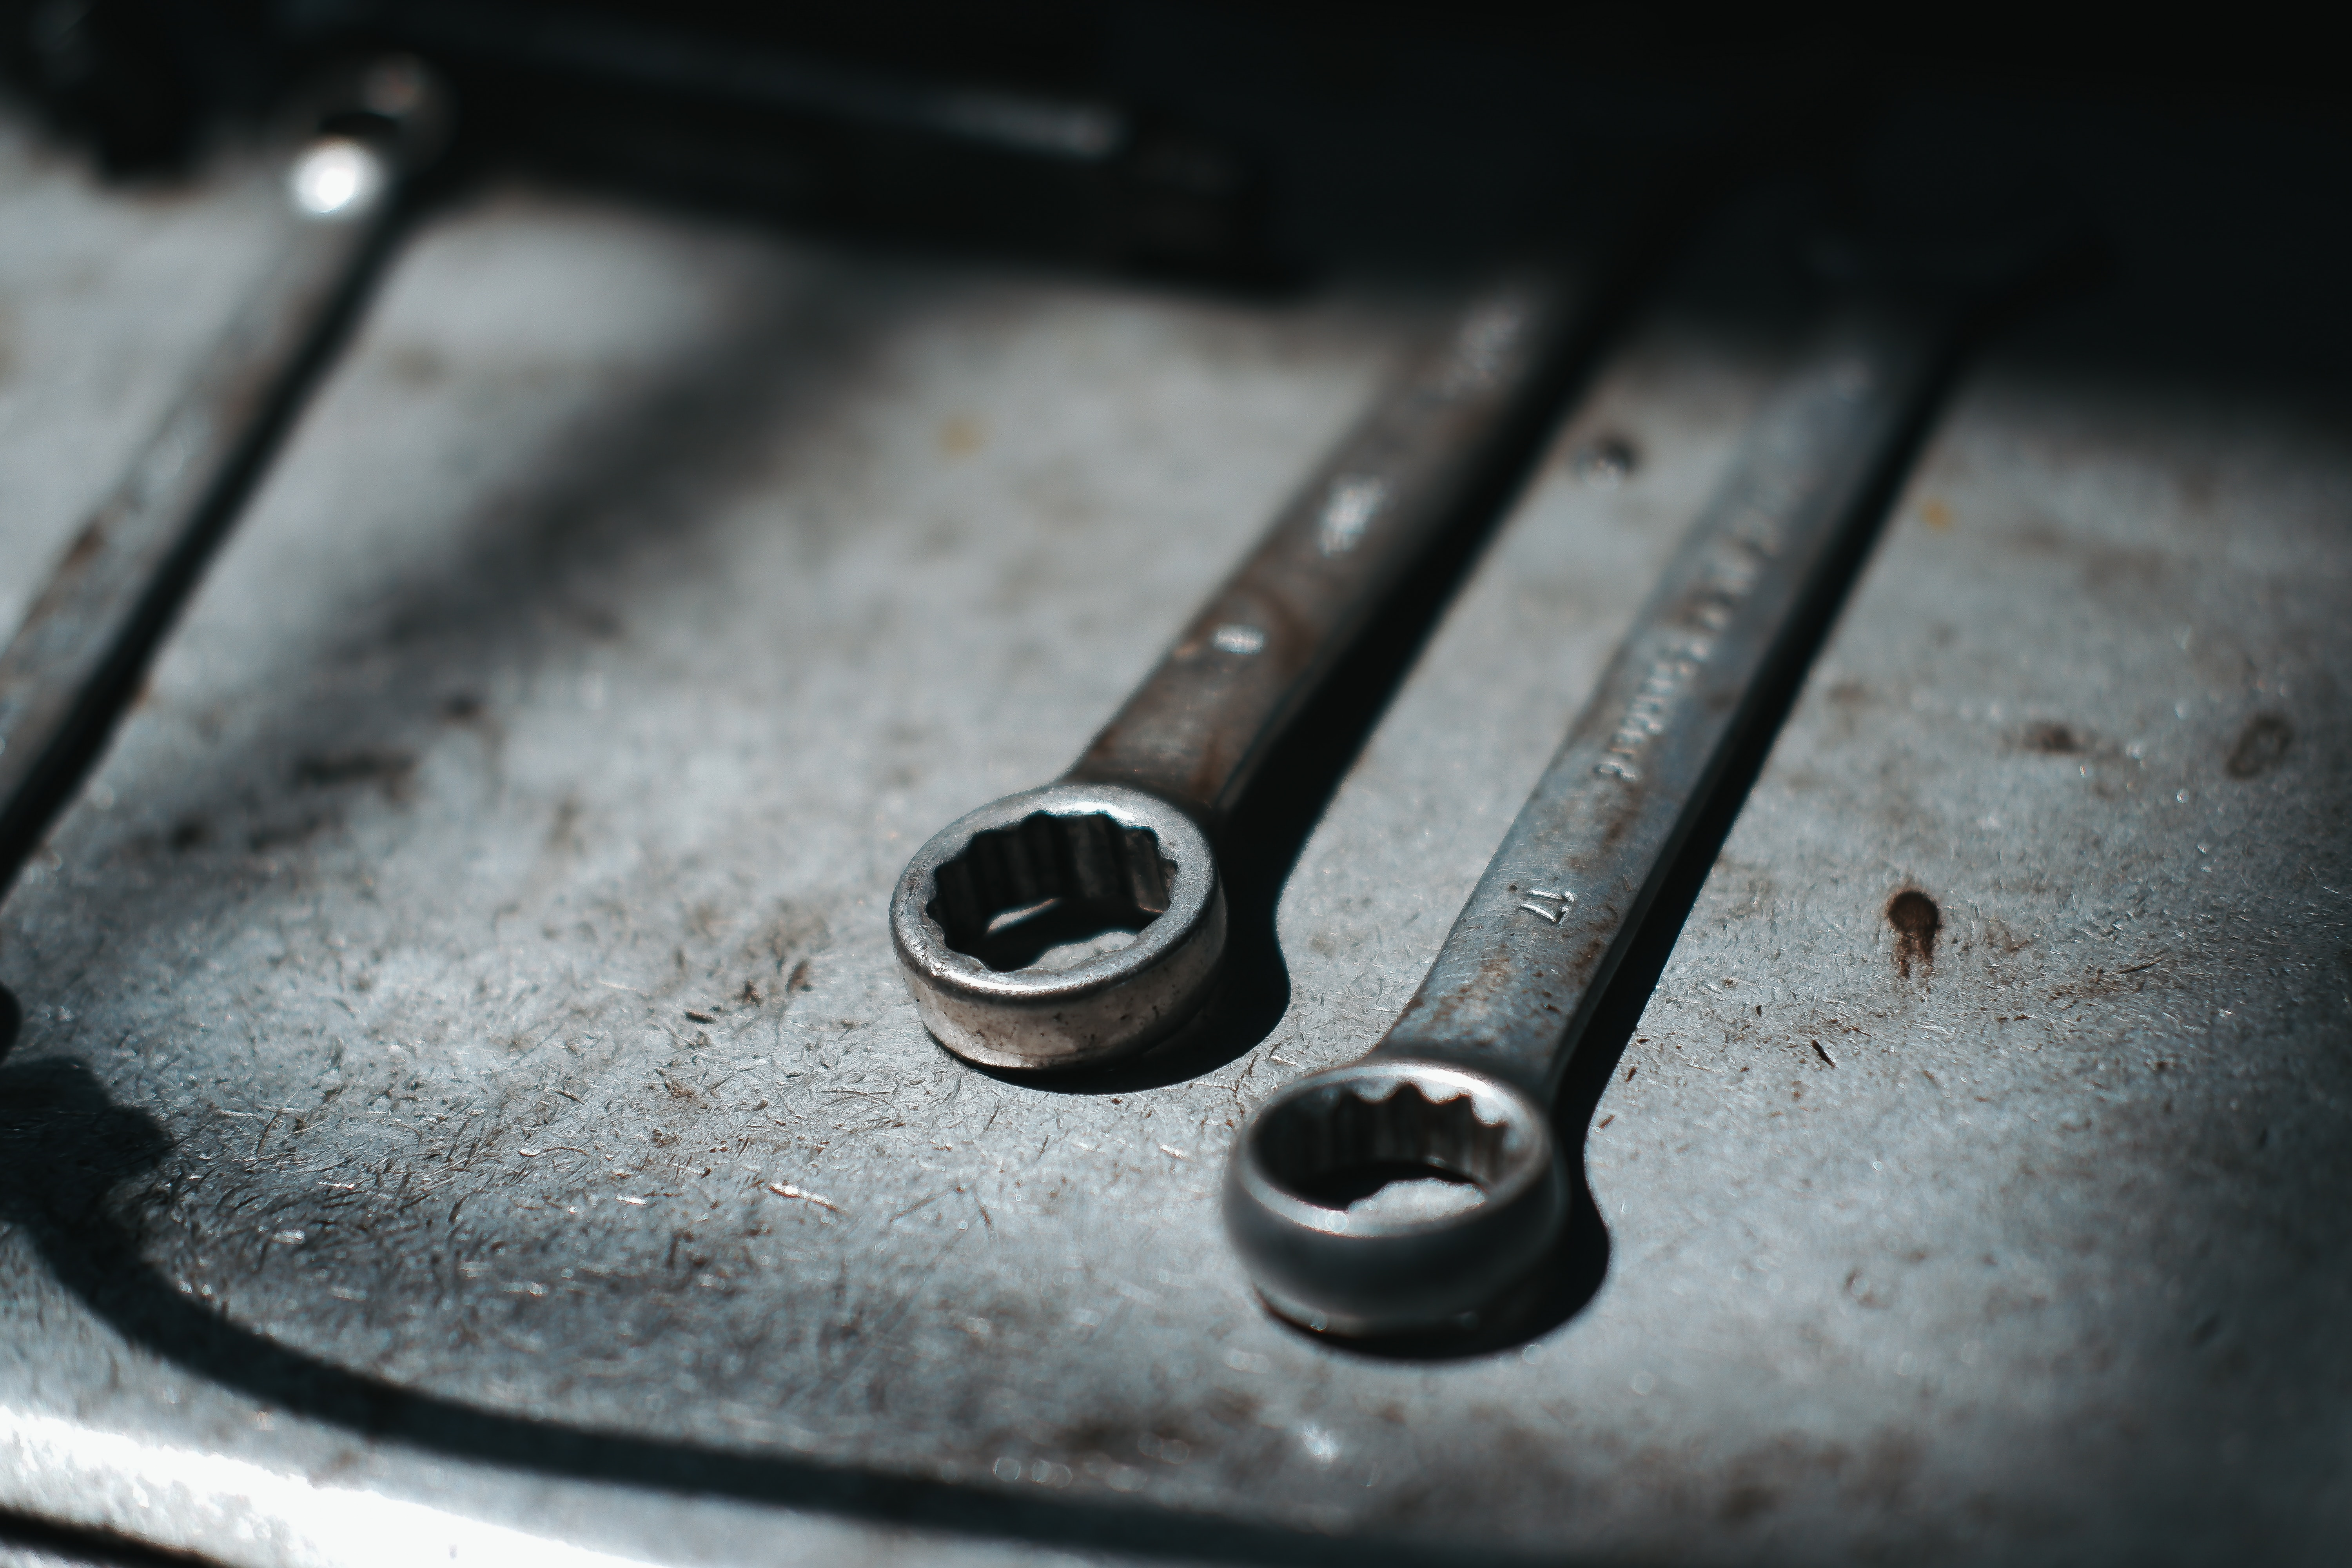 wrenches-duy-hoang-eySpTcC9eqE-unsplash